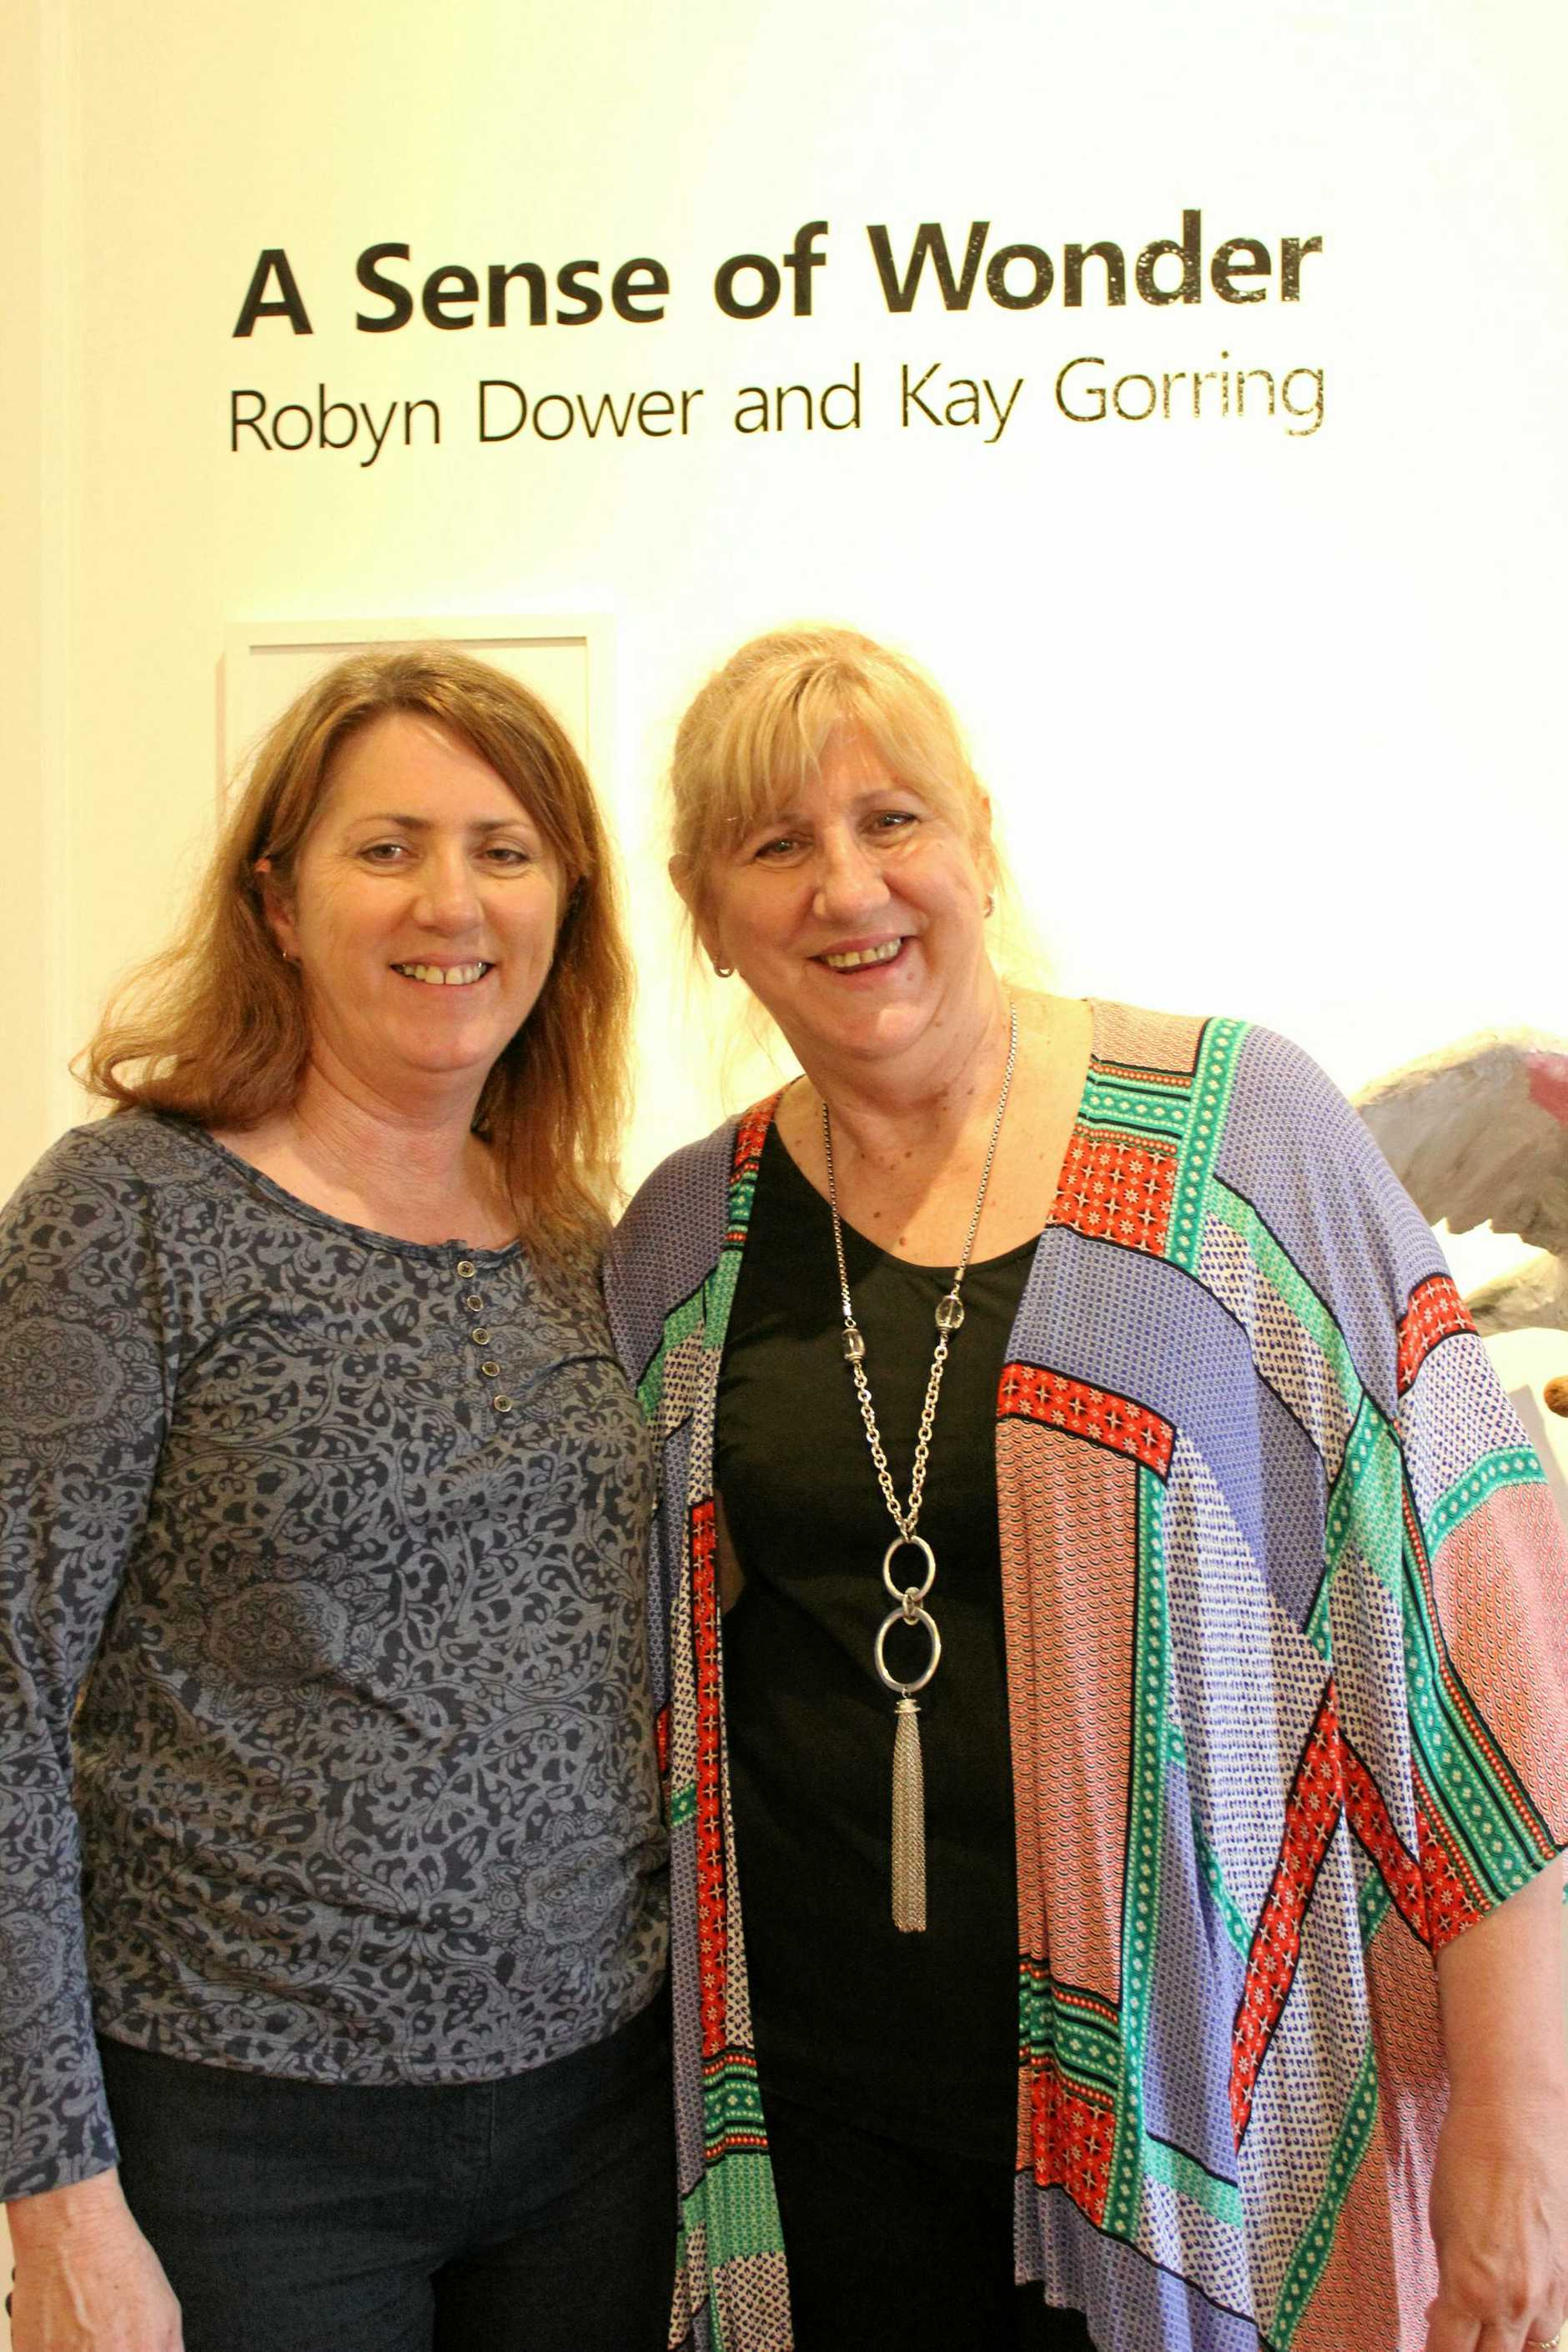 SISTER ACT: Artist Robyn Dower (left) and her sister, writer and poet Kay Gorring at the opening of their exhibition, A Sense of Wonder.